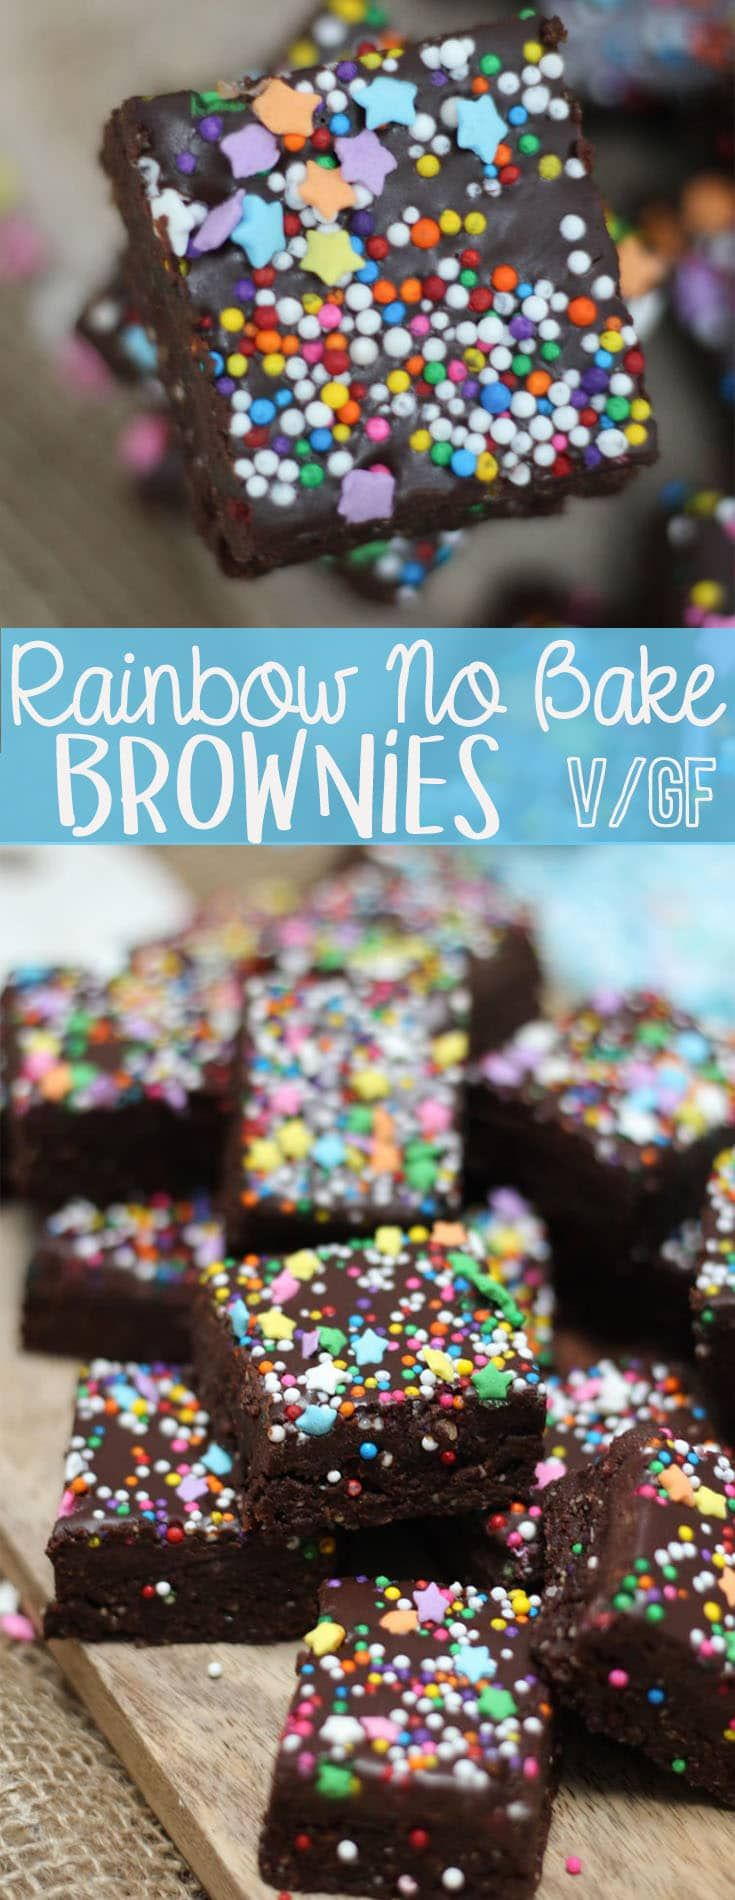 These Rainbow No Bake Brownies are perfect Vegan and Gluten Free Desserts for getting your chocolate fix any night of the week. #rainbow #nobake #brownies #vegan #glutenfree #paleo